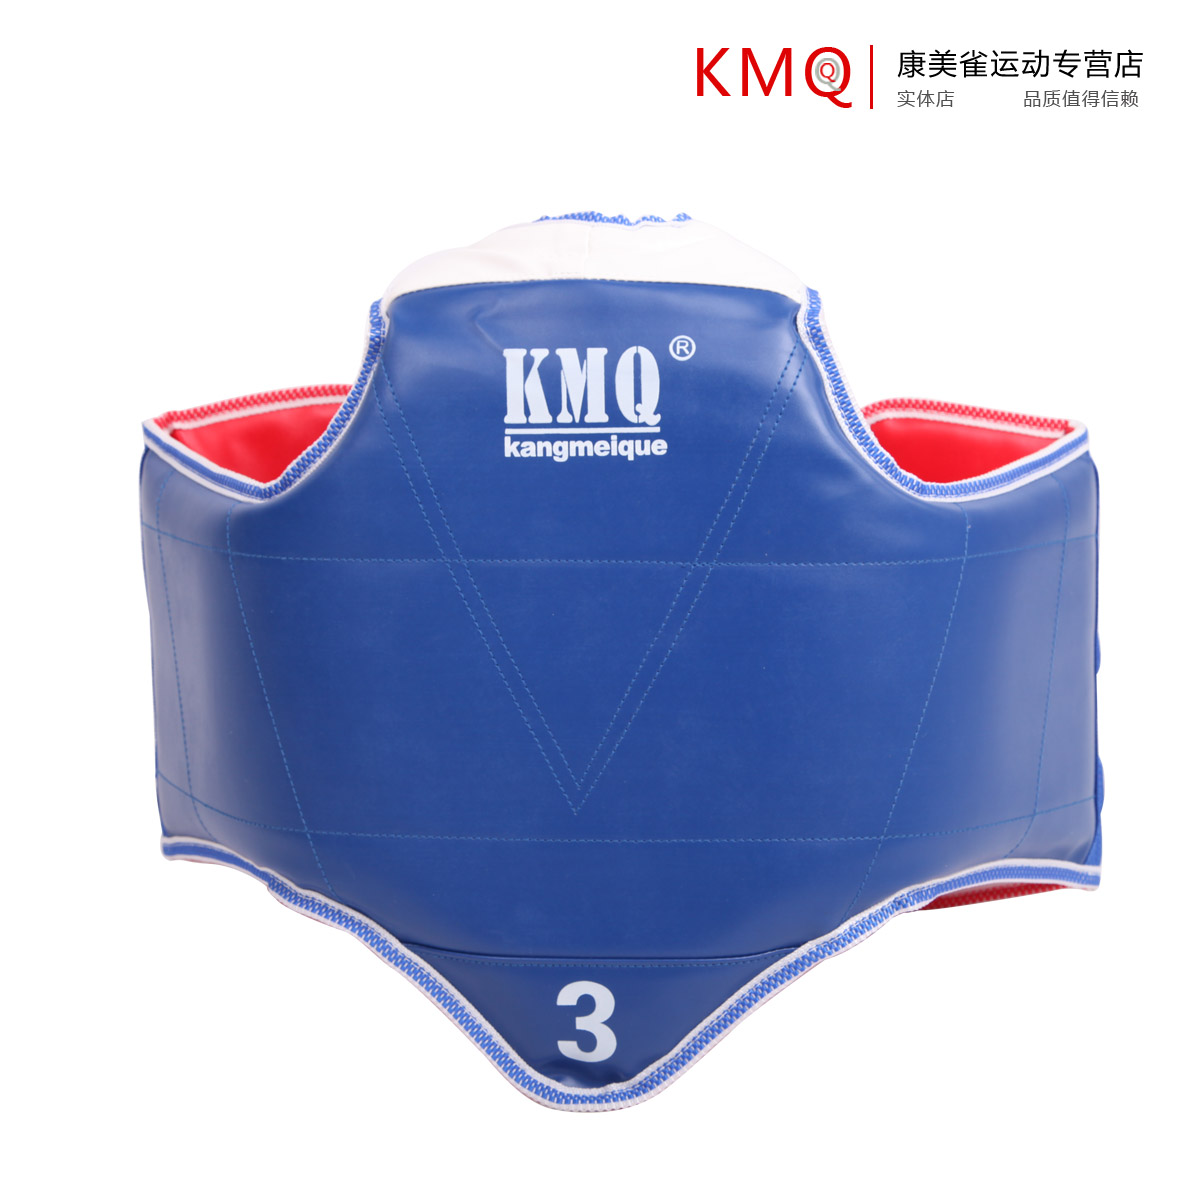 Freeshipping!Taekwondo Sparring Boxing Fight protective gear setting red and blue chest protector vest and face protectors(China (Mainland))